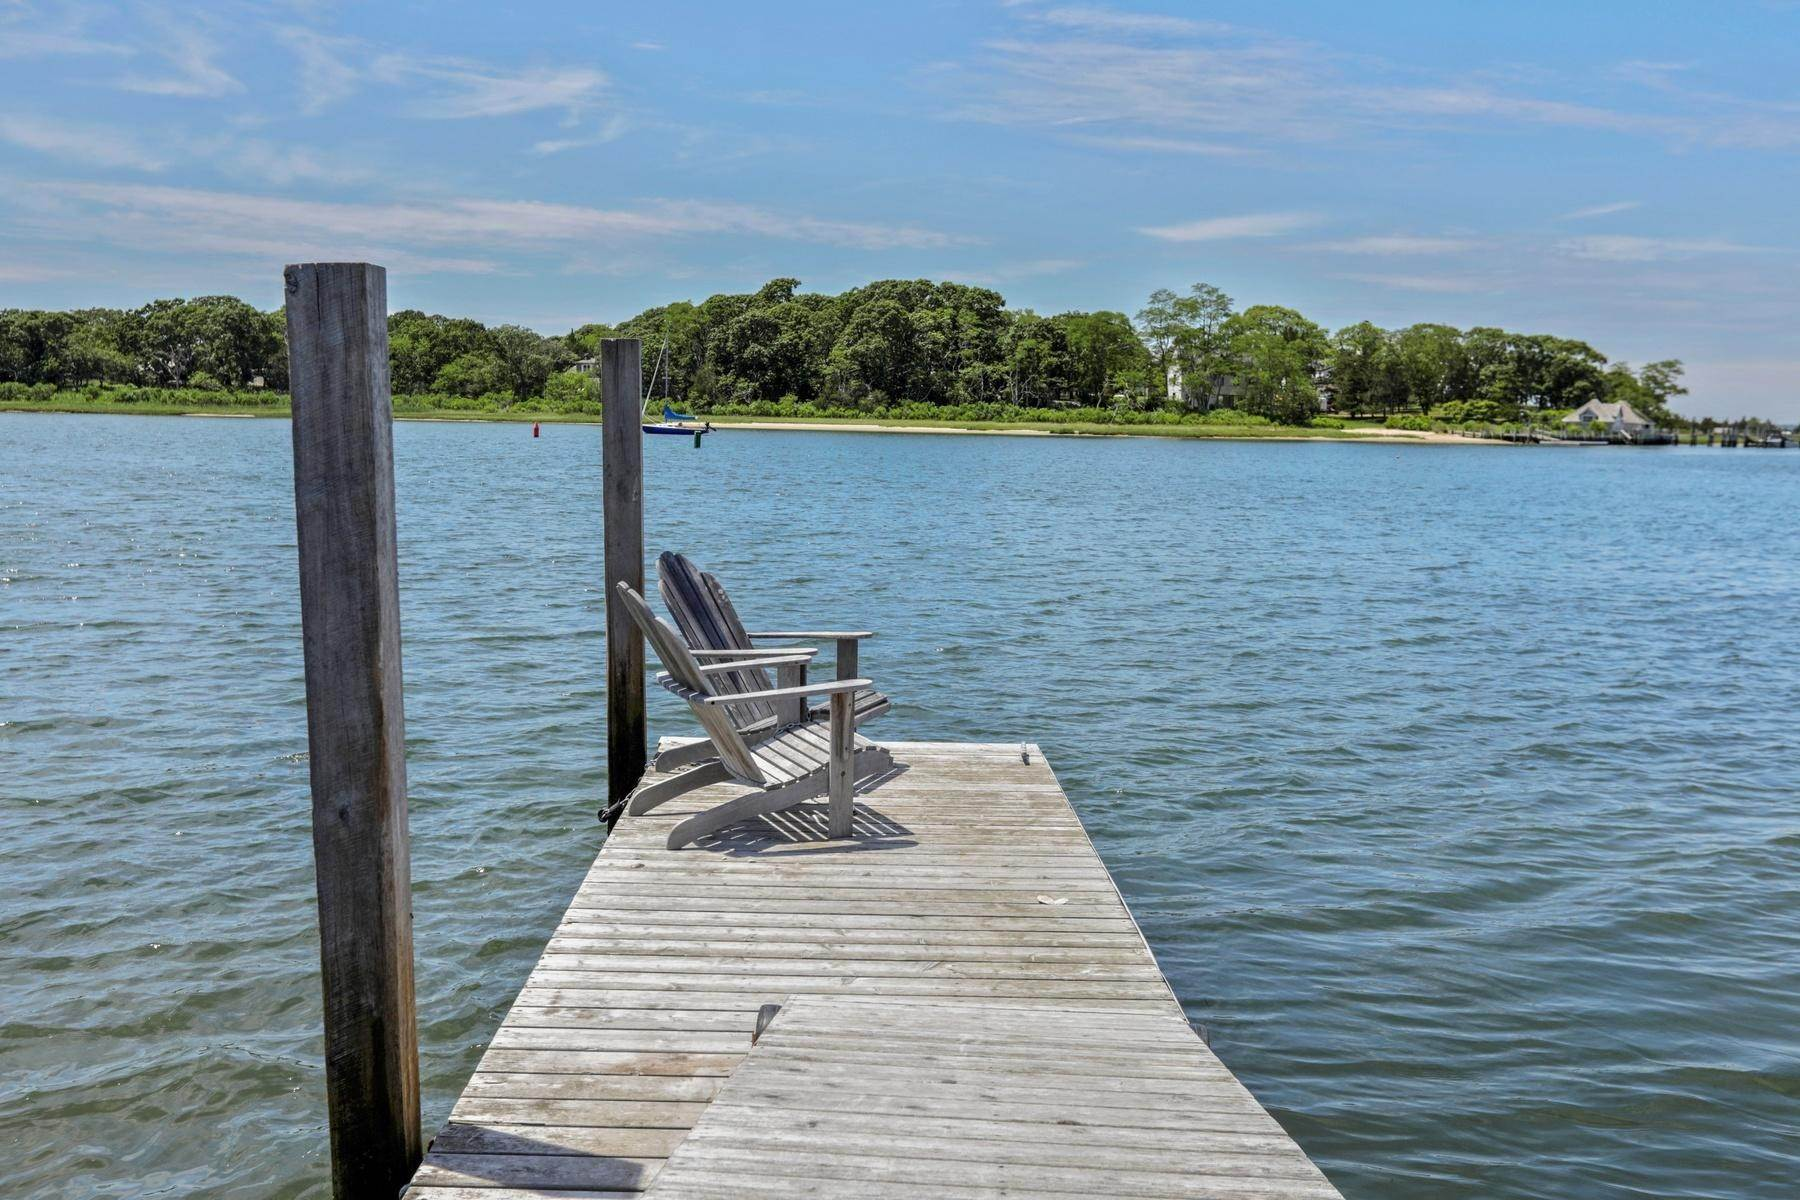 3. Single Family Home at Bullhead Bay Front, New Construction Southampton, NY 11968